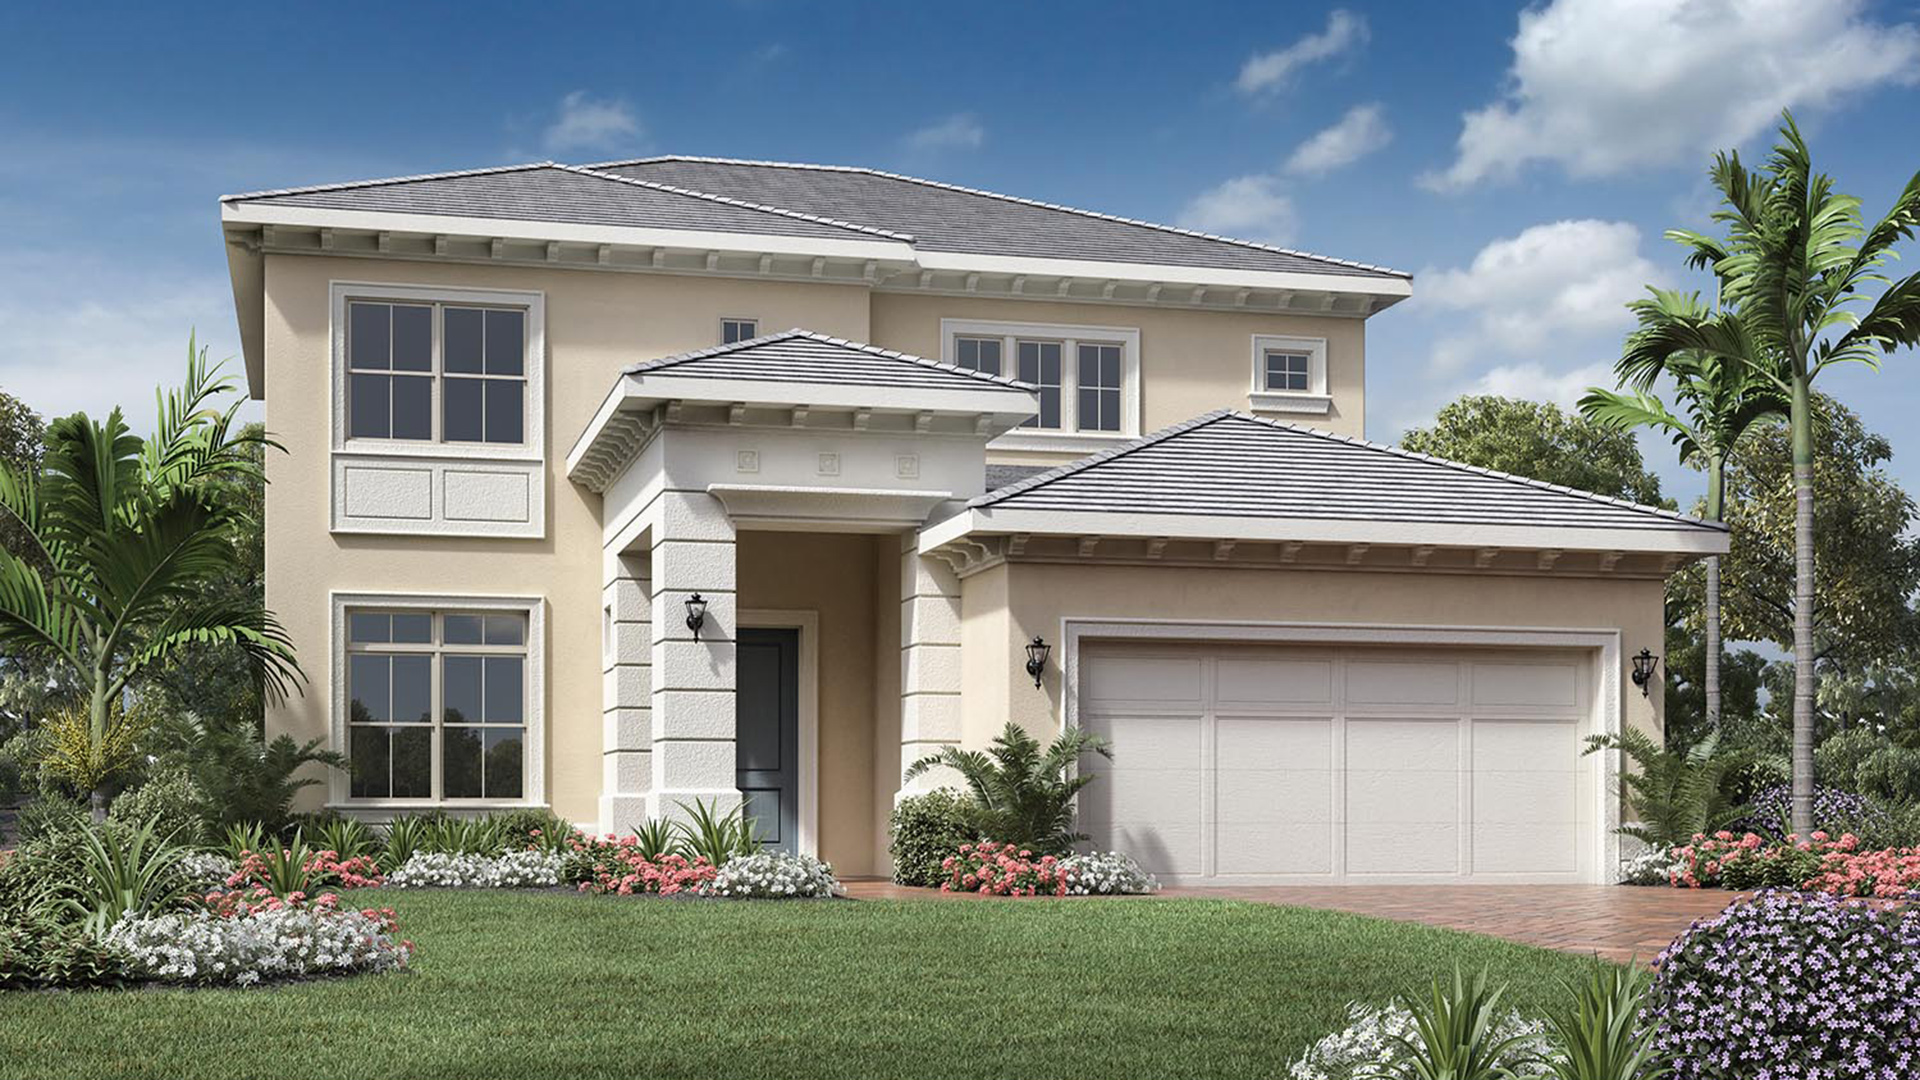 Toll brothers at eagle creek estate collection the for Palm beach home collection